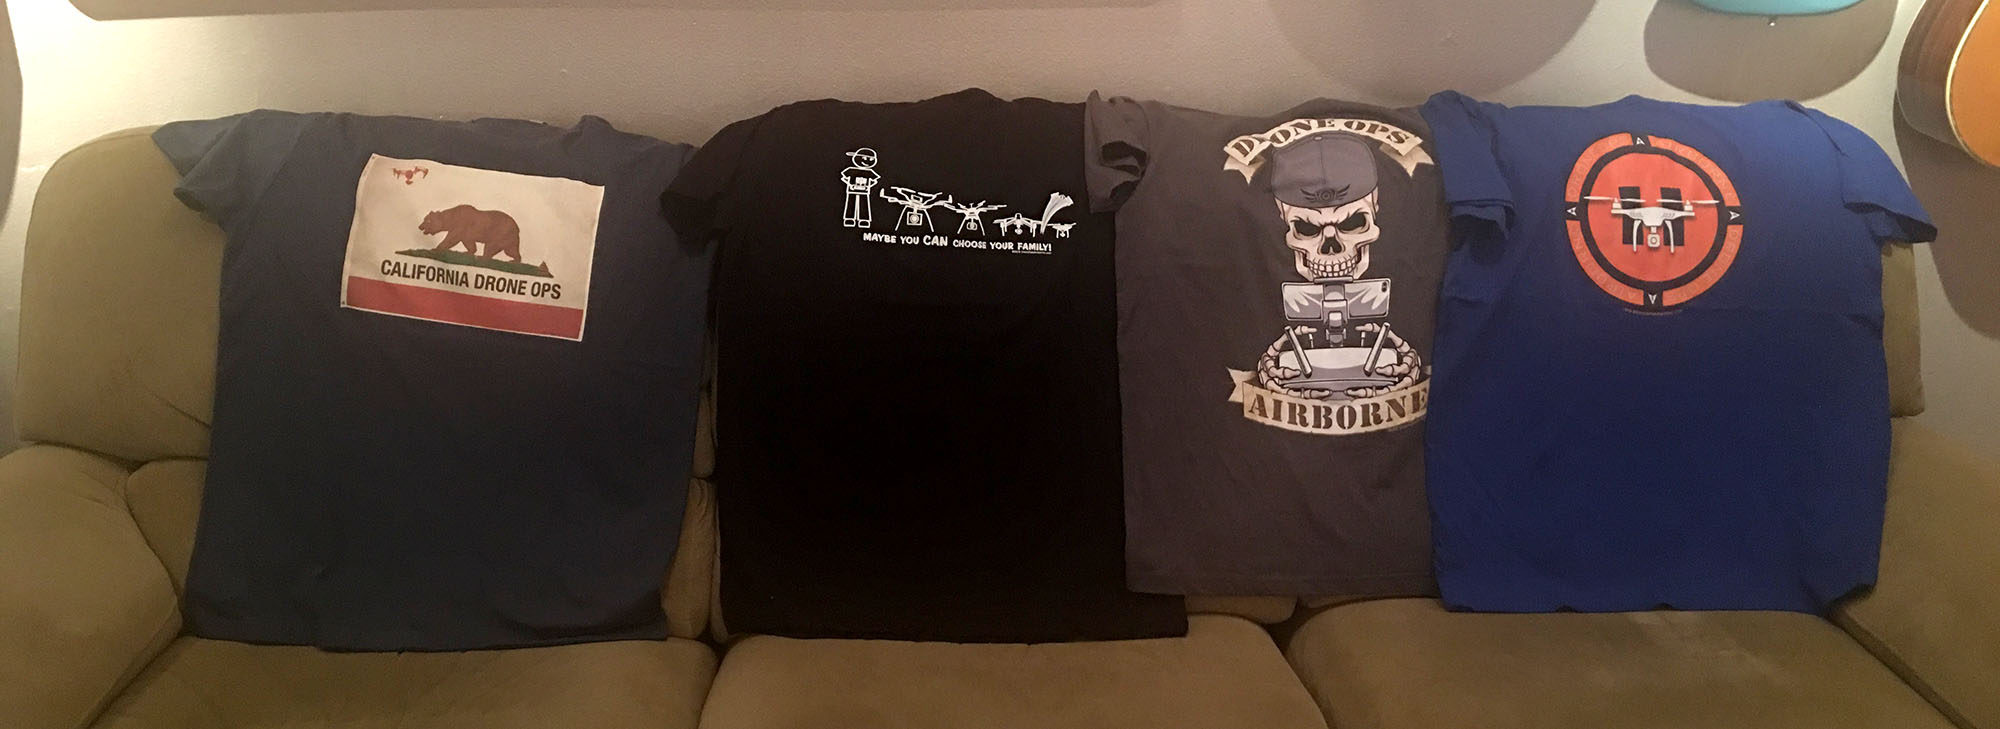 T-shirts for drone pilots